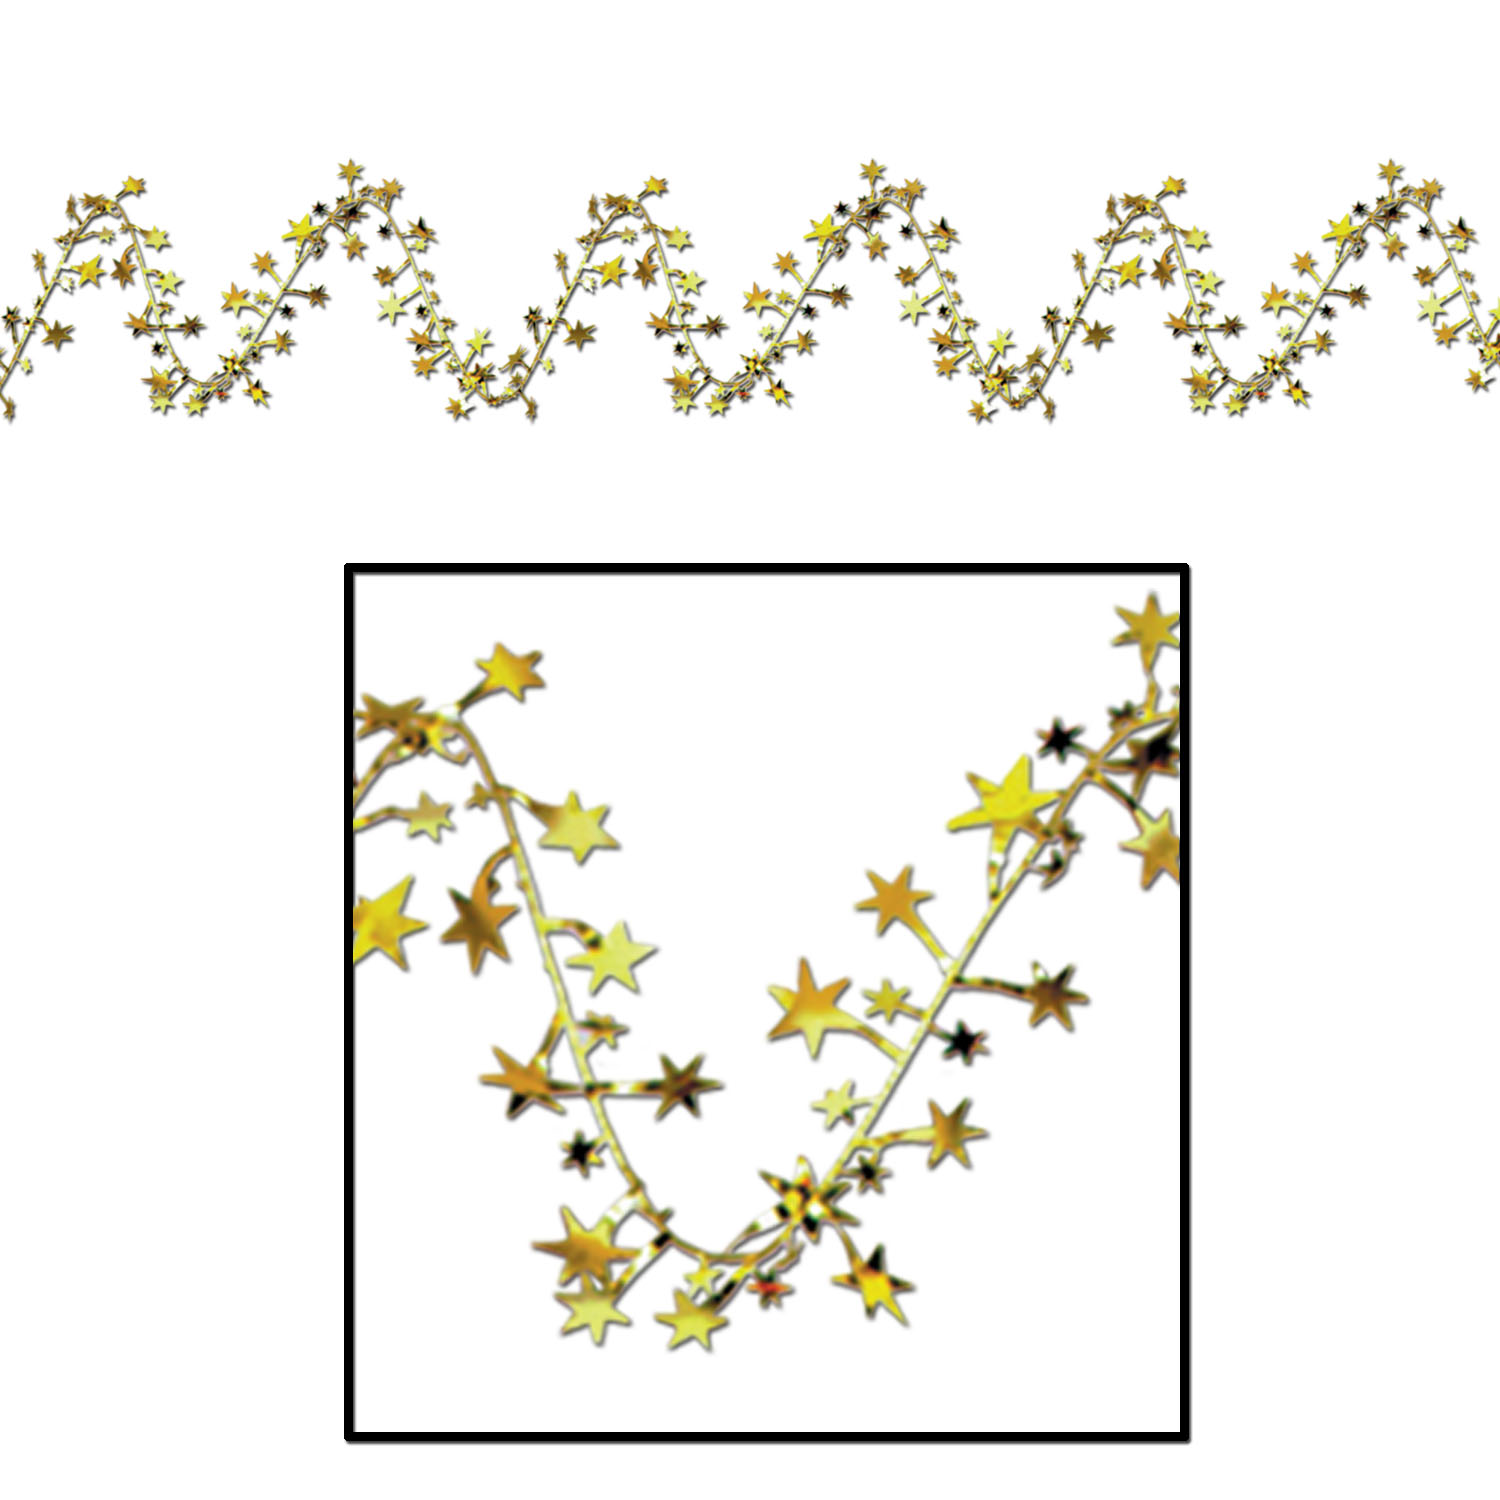 Gleam N Flex Star Garland (Pack of 12) Gleam N Flex Star Garland, Star Garland, Decorative Fringe, Decorative Garland, Fringe, Garland, Fringe Garland, New Year's Eve